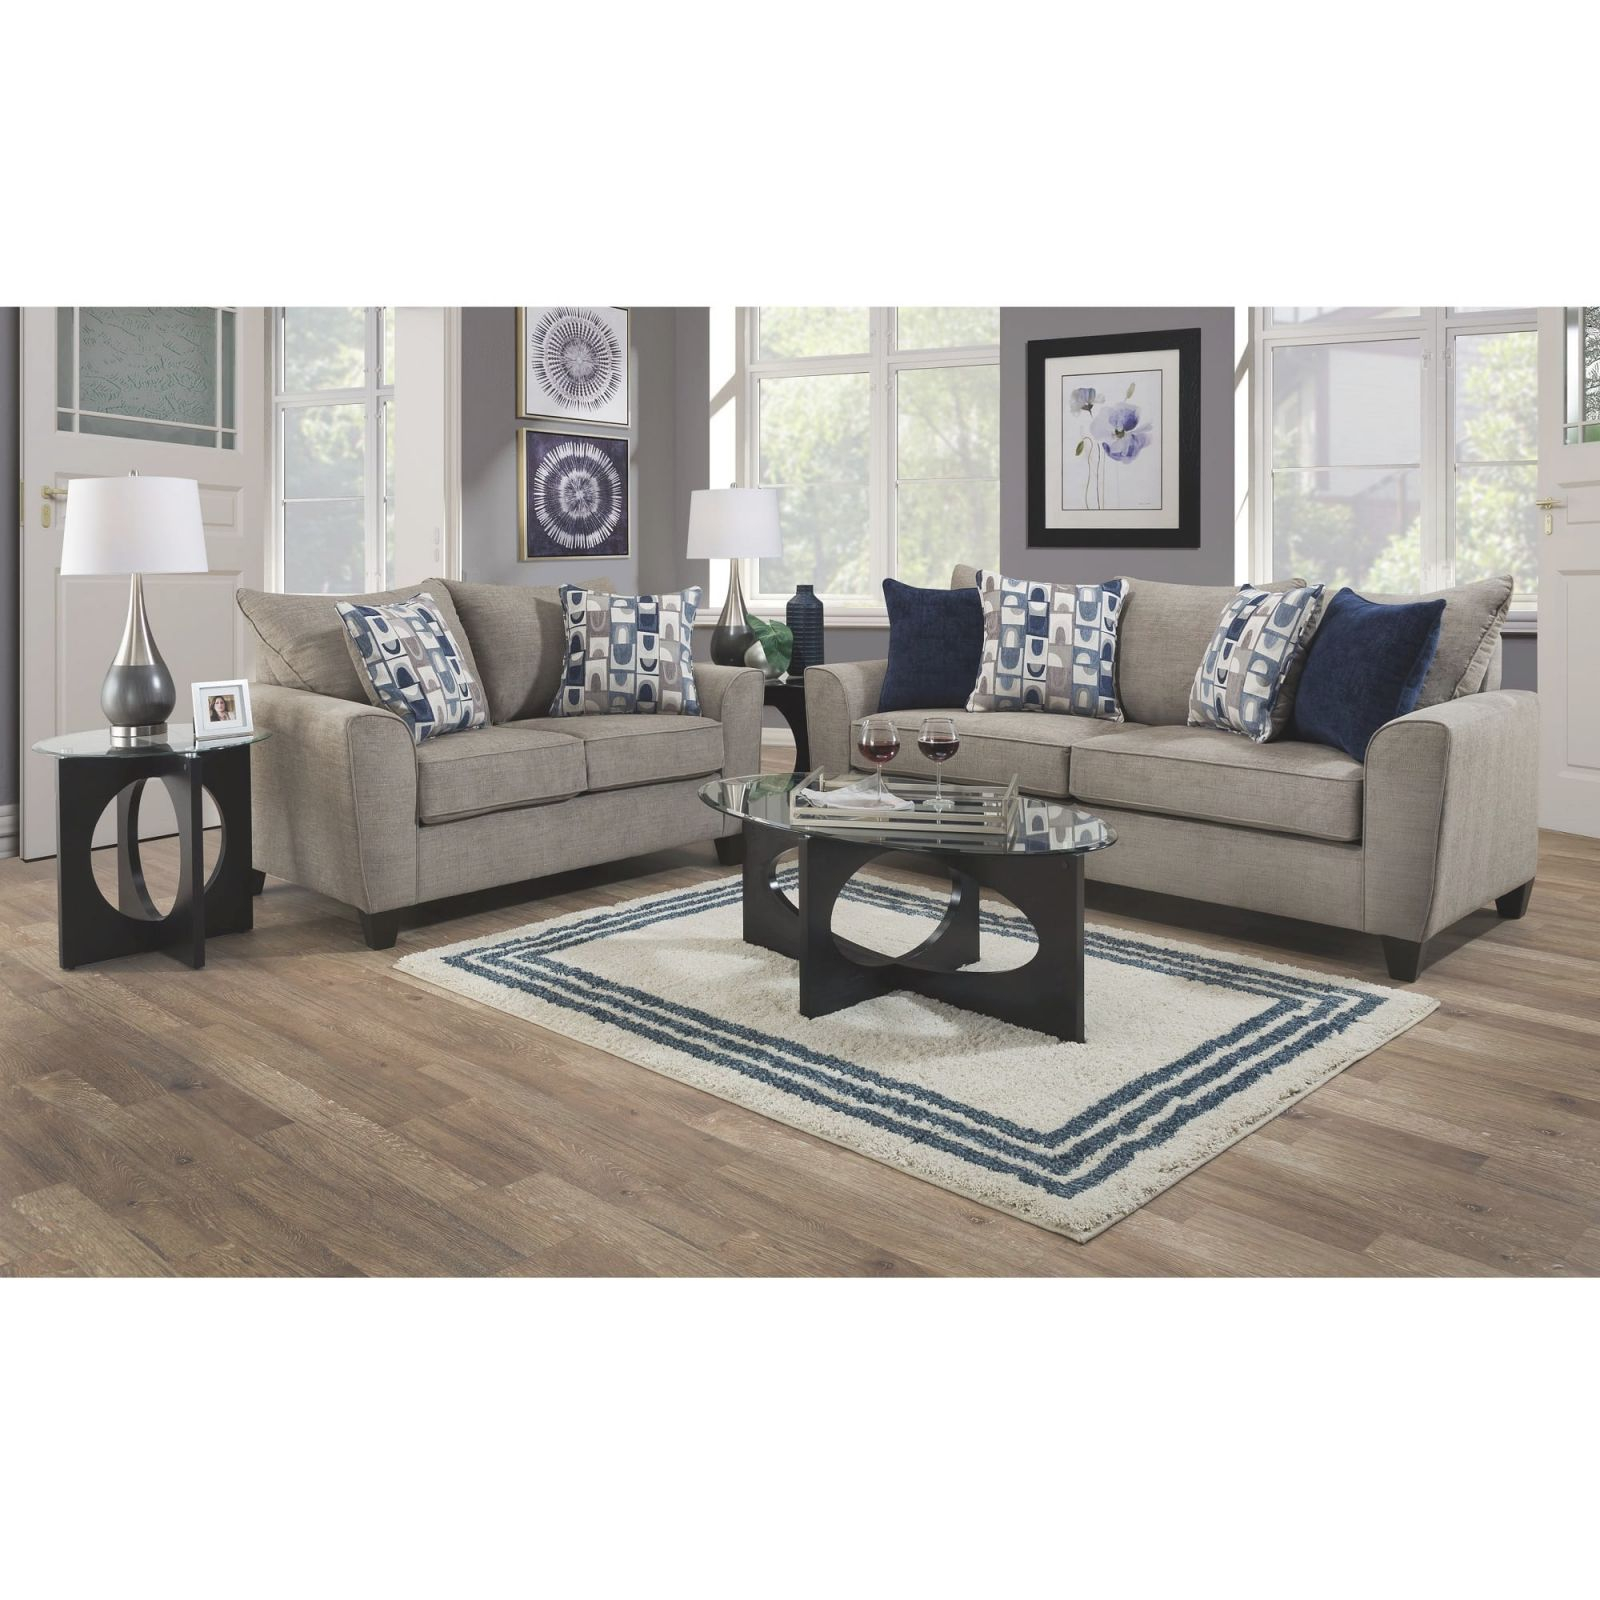 2-Piece Eden Living Room Collection for Cheap Living Room ...